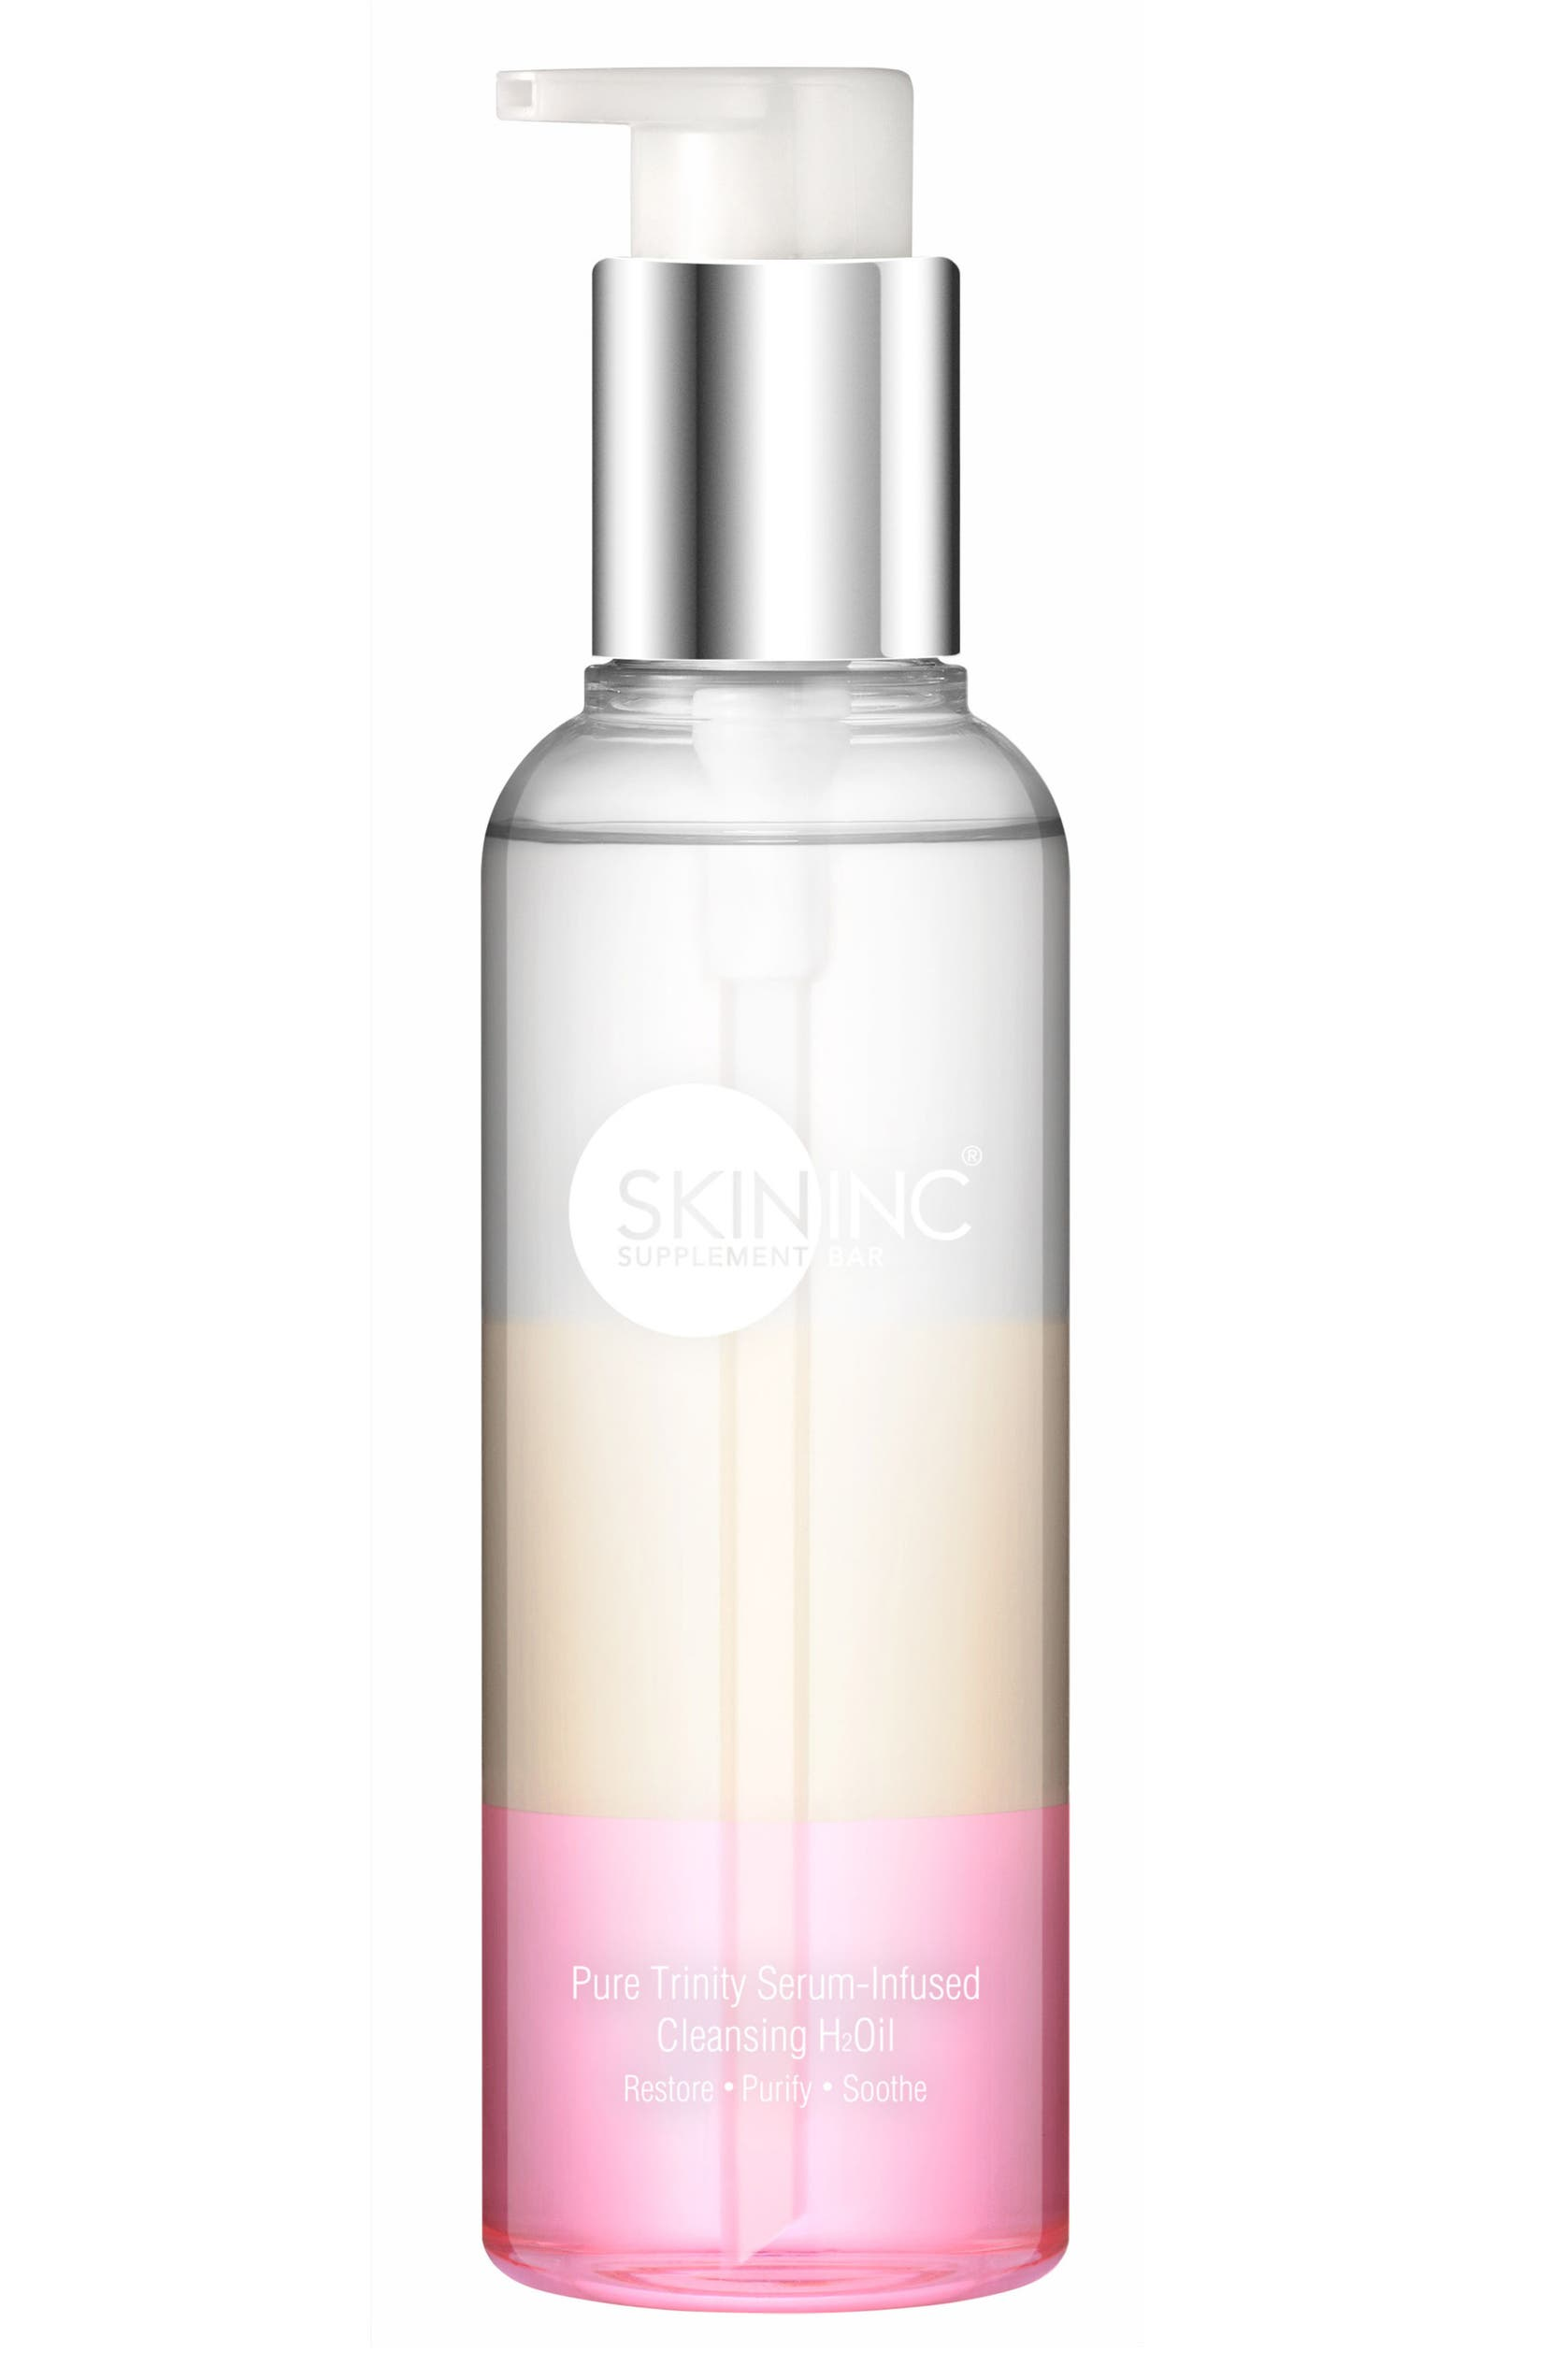 Pure Trinity Cleansing Oil by Skin Inc #2